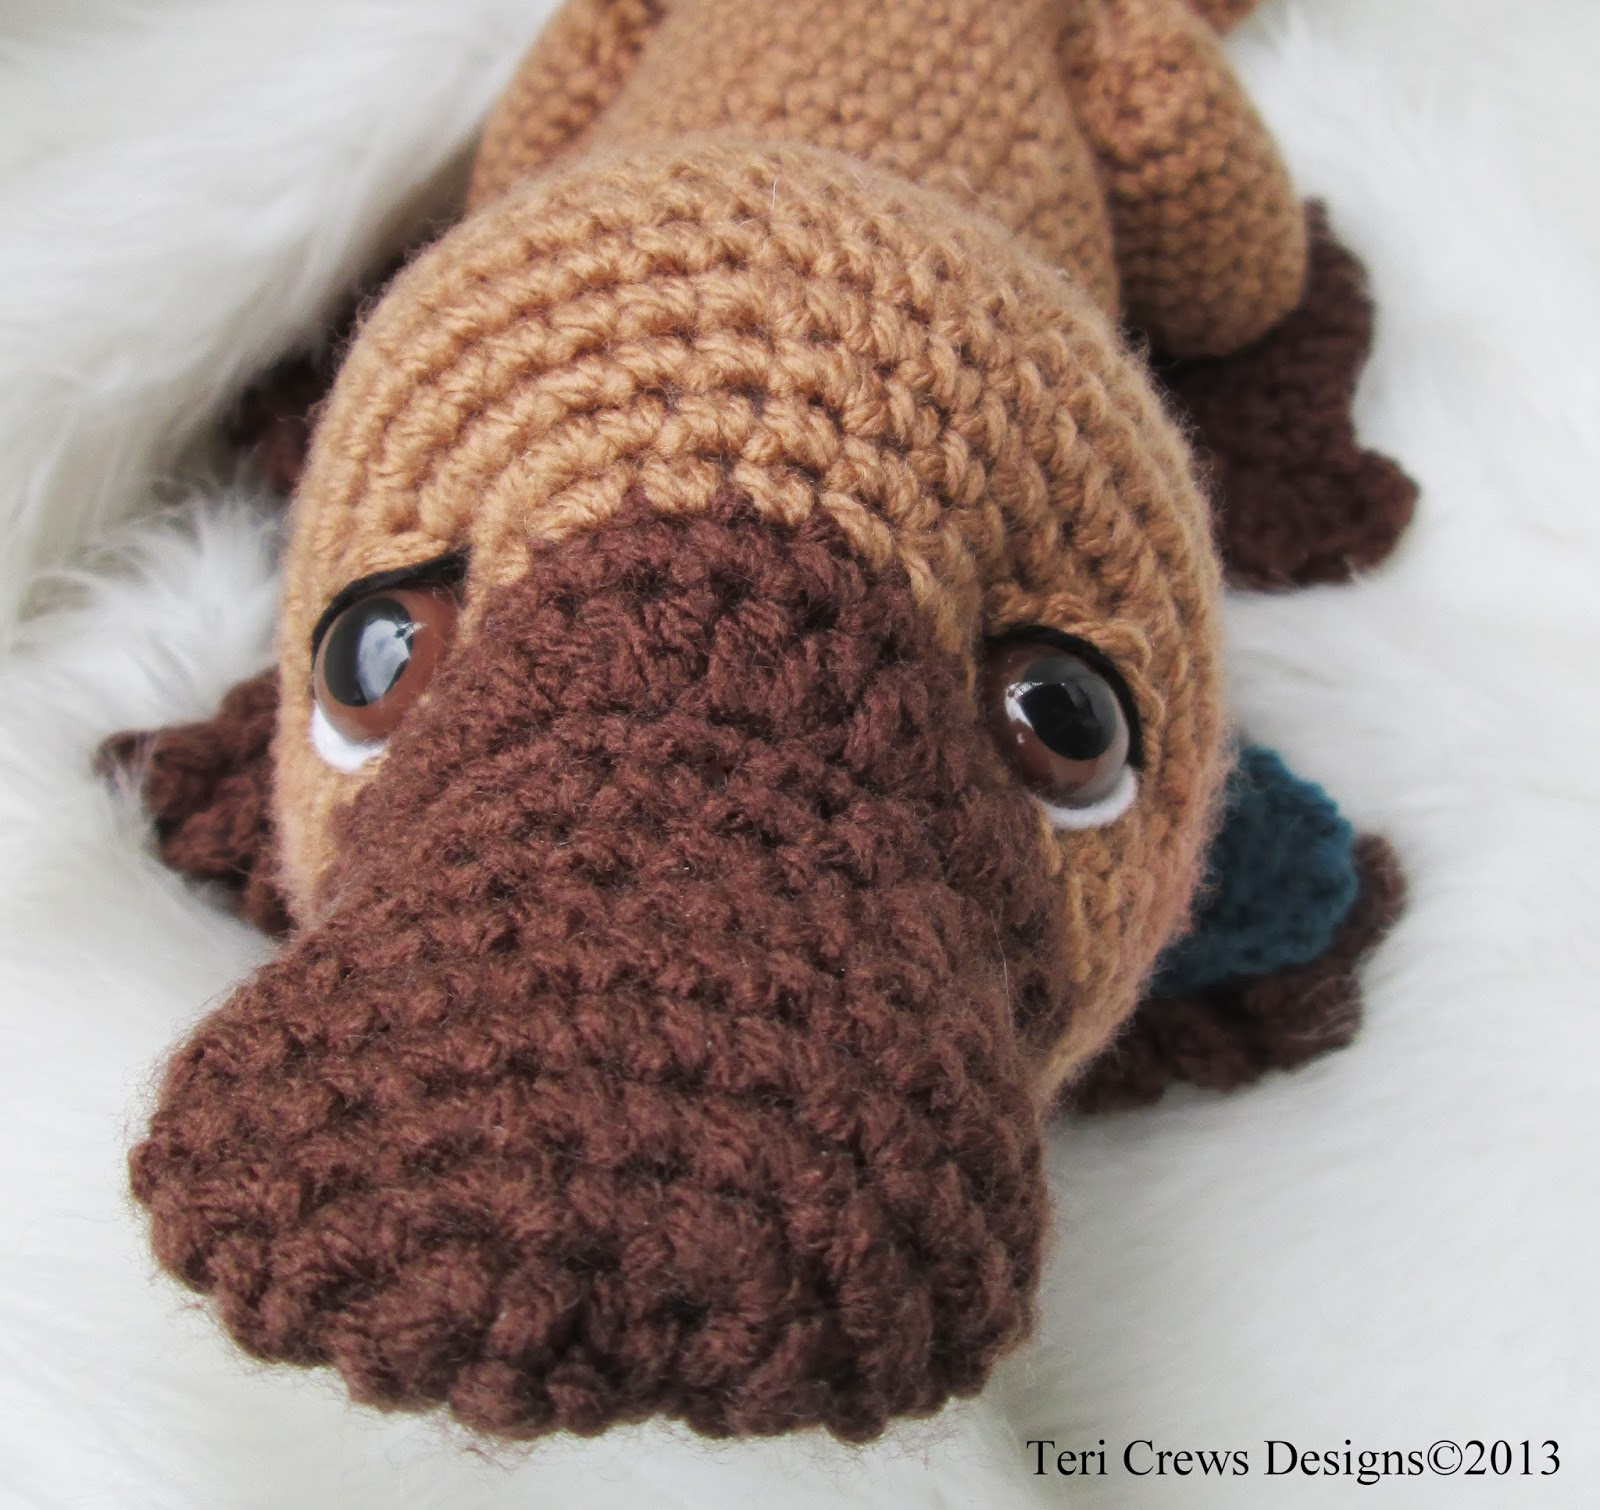 Crochet Stitches In Australia : Time for something new. Introducing Simply Cute Platypus.